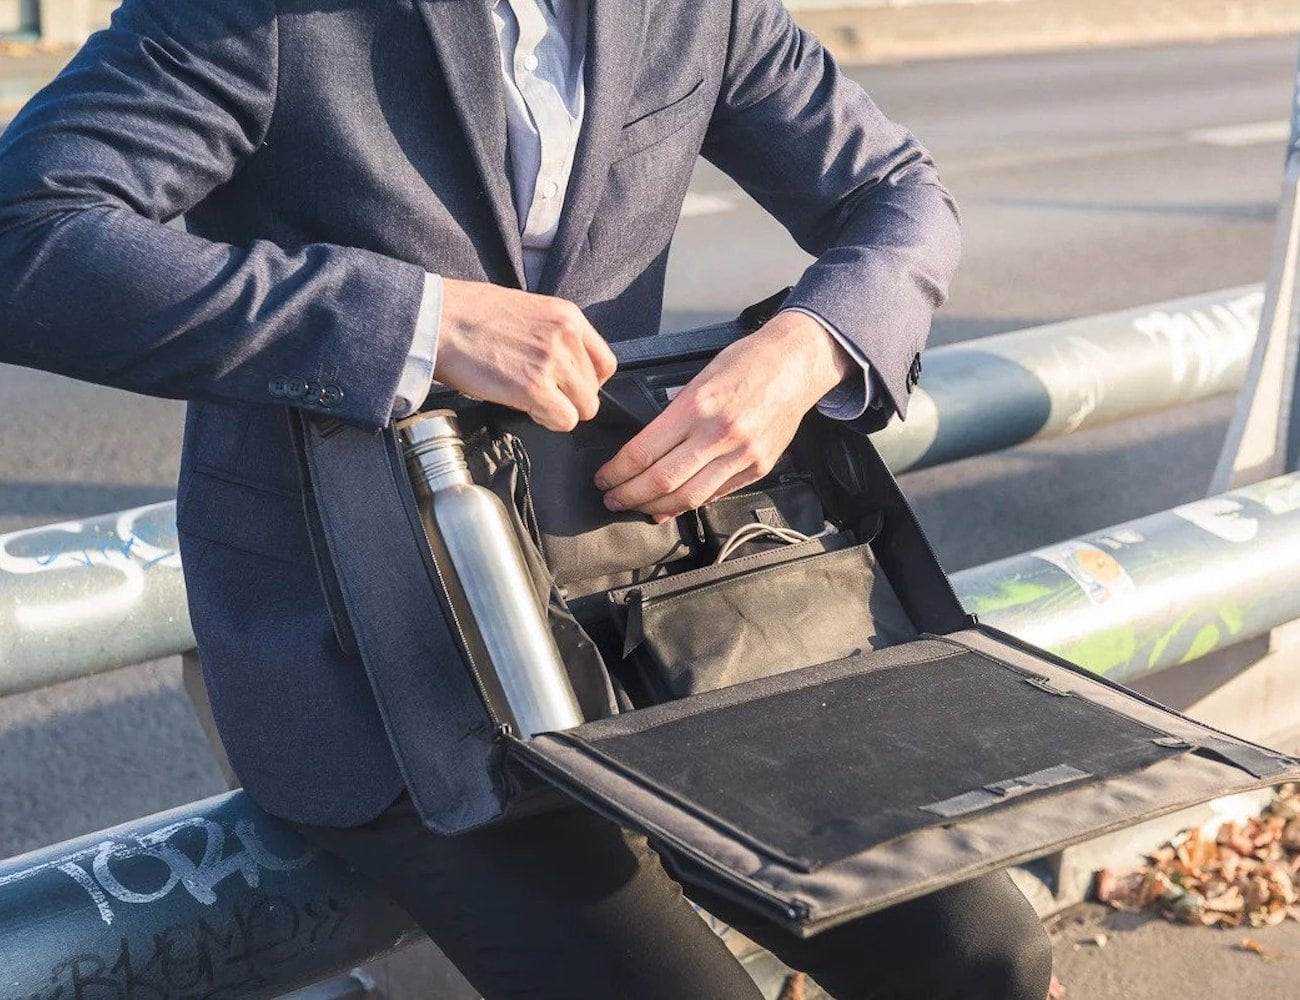 Urban Nomads Workstation Laptop Bag lets you work absolutely anywhere